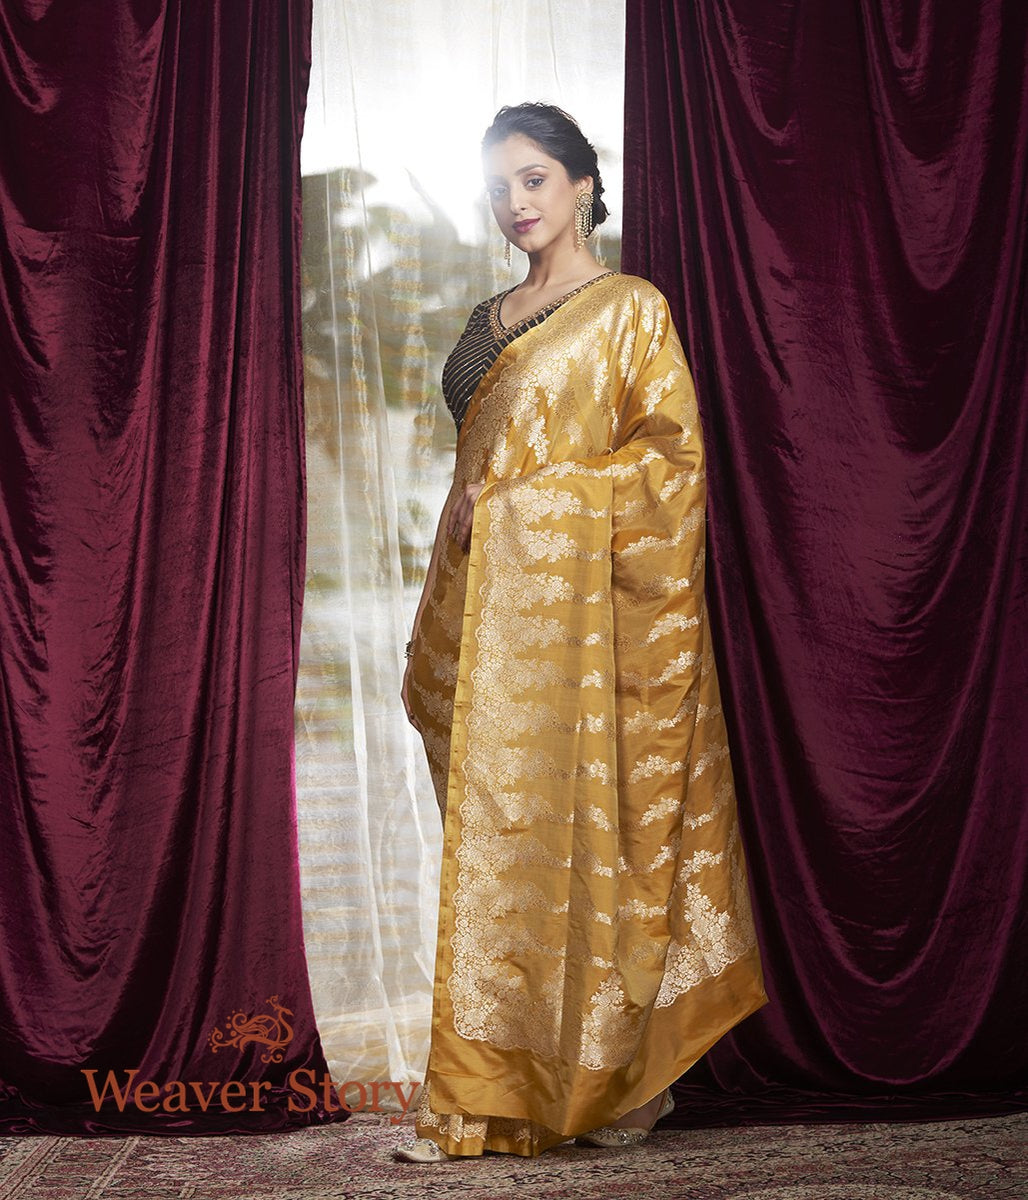 Handwoven Gold Banarasi Saree with Floral Bel Woven Vertically